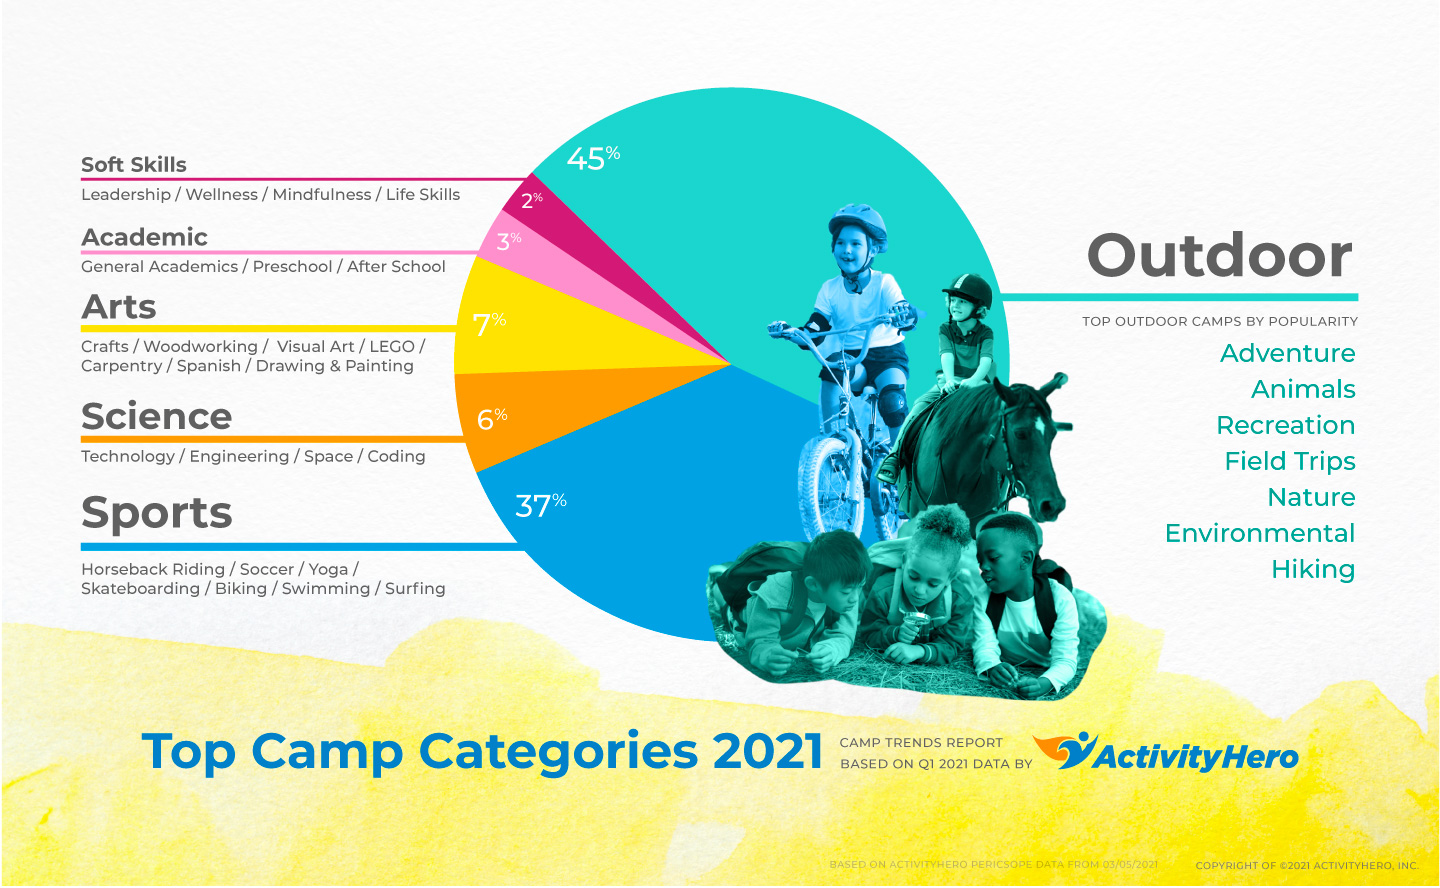 Camp Trends Report Based on Q1 2021 data by ActivityHero. 45% of all searched activities are outdoor. Horseback riding and biking classes are filling quickly.